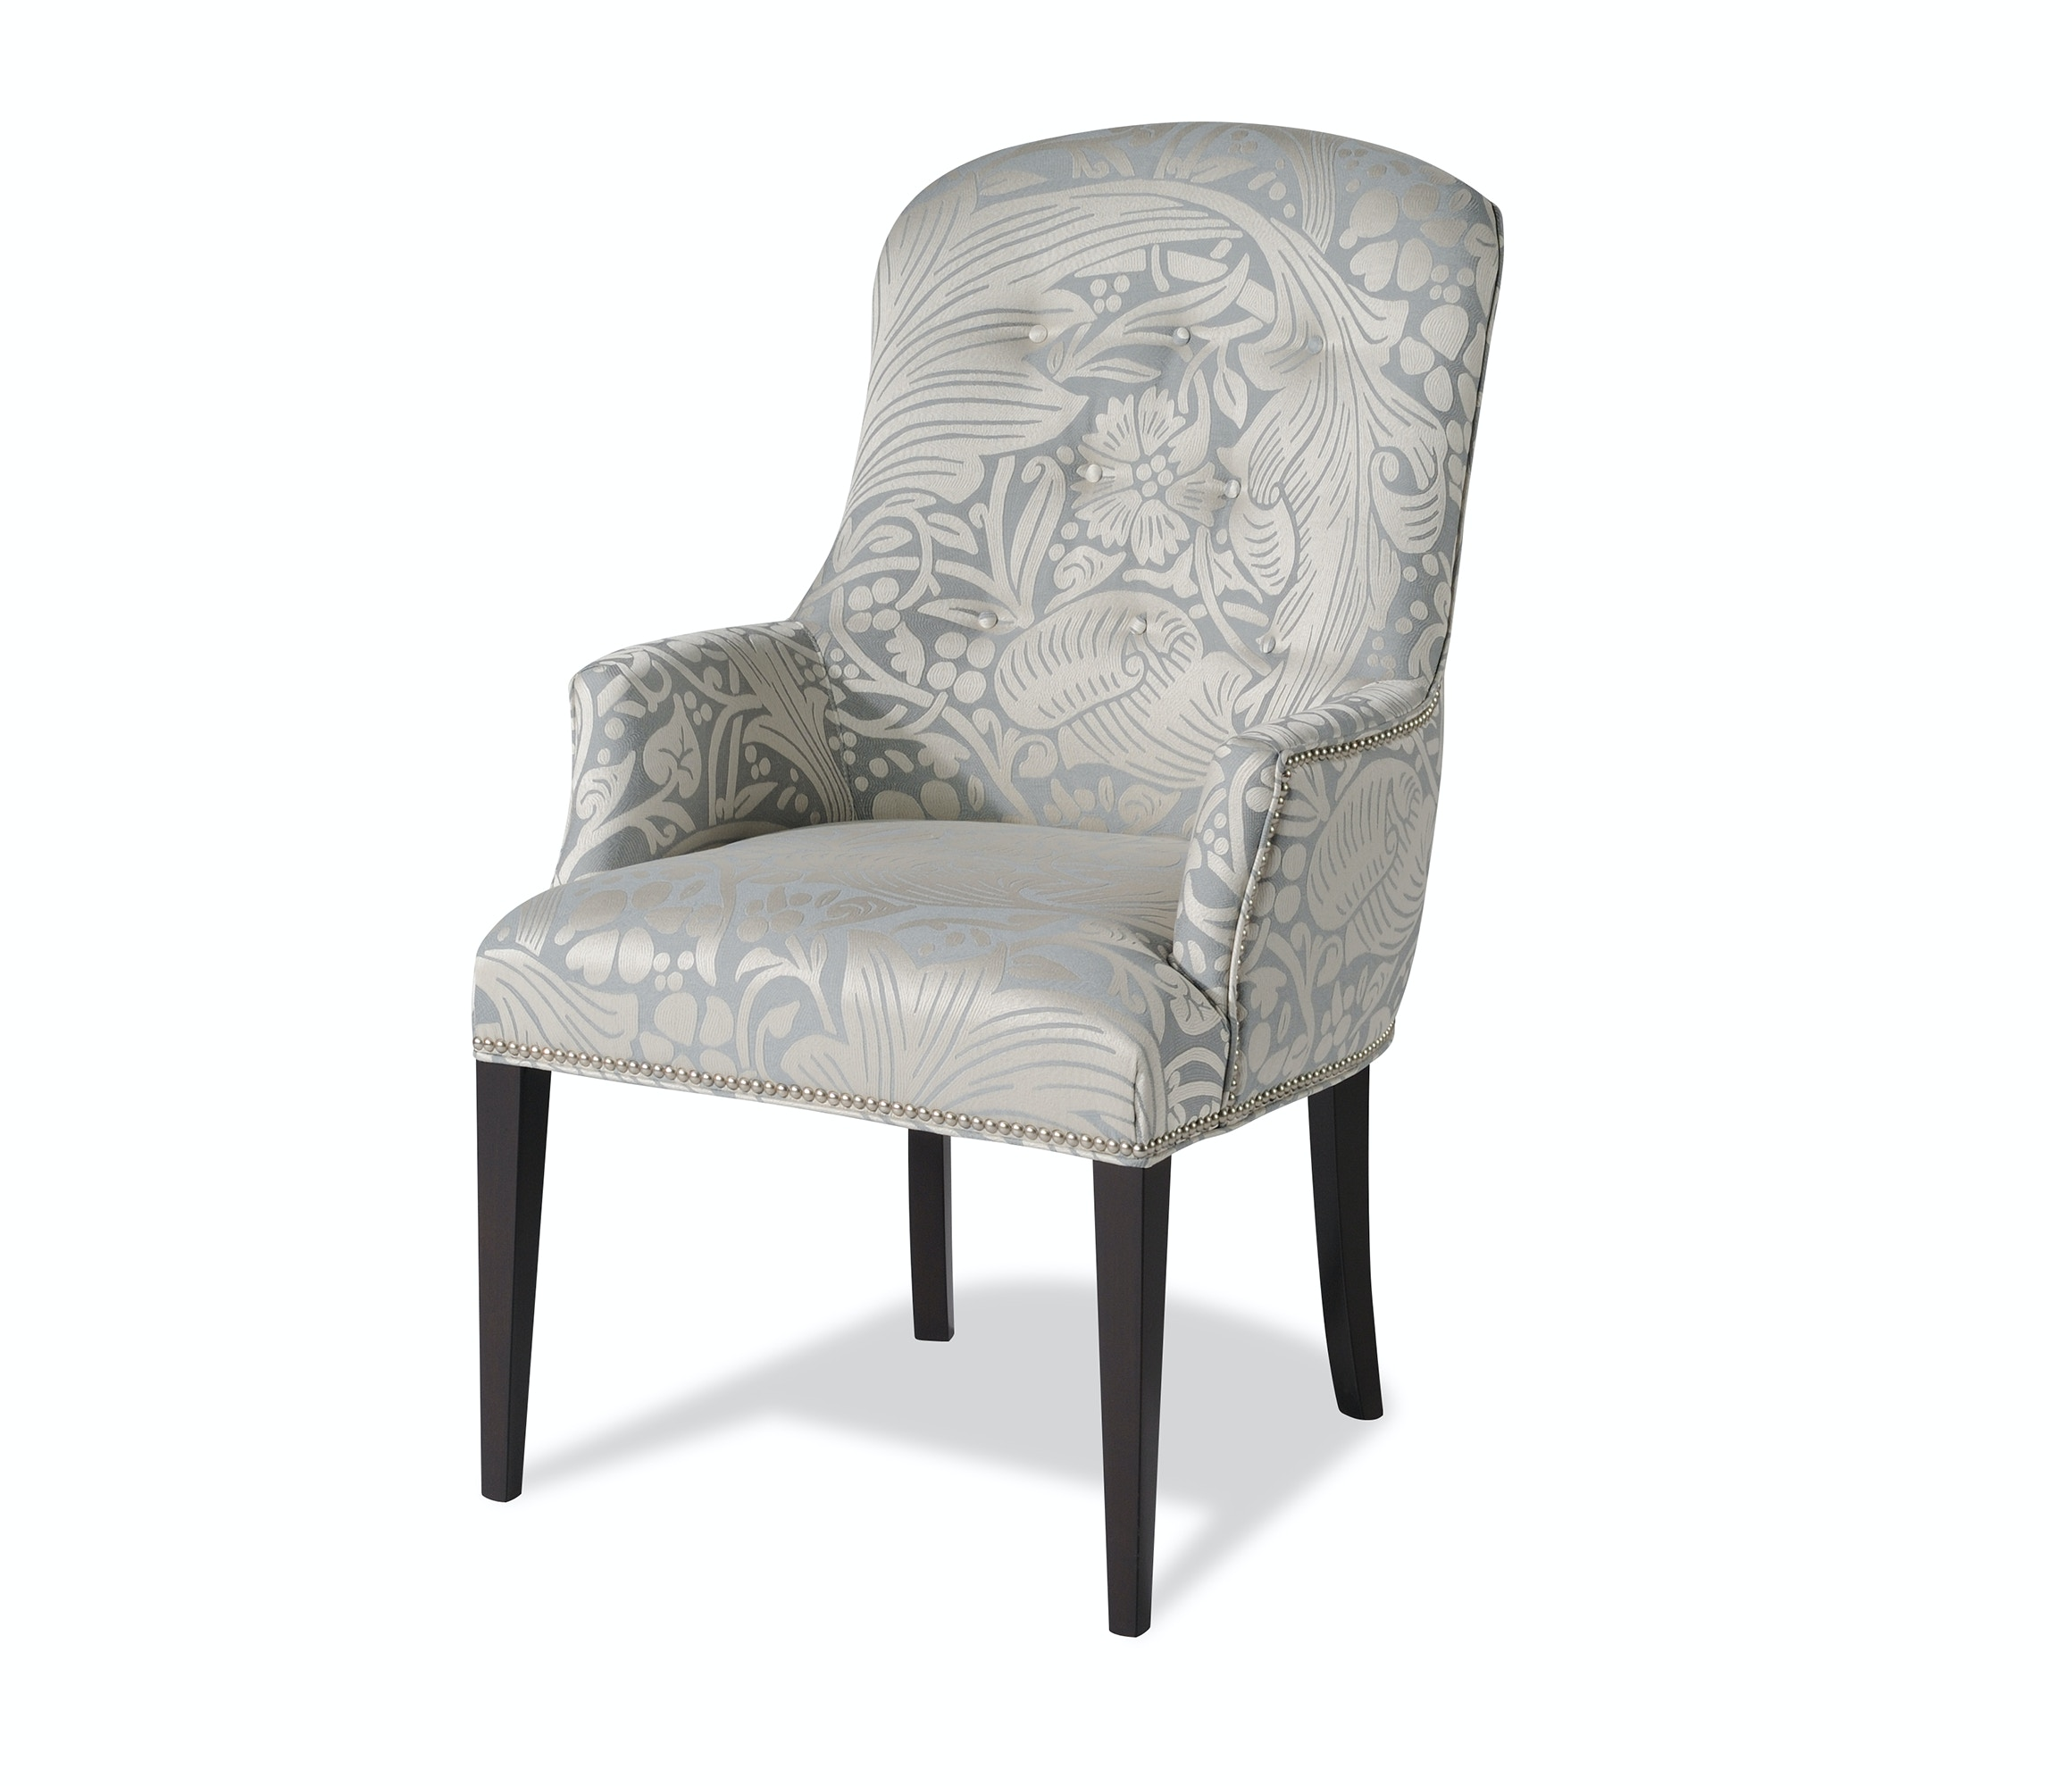 king furniture dining chairs pier one taylor room glencoe arm chair 2213 01